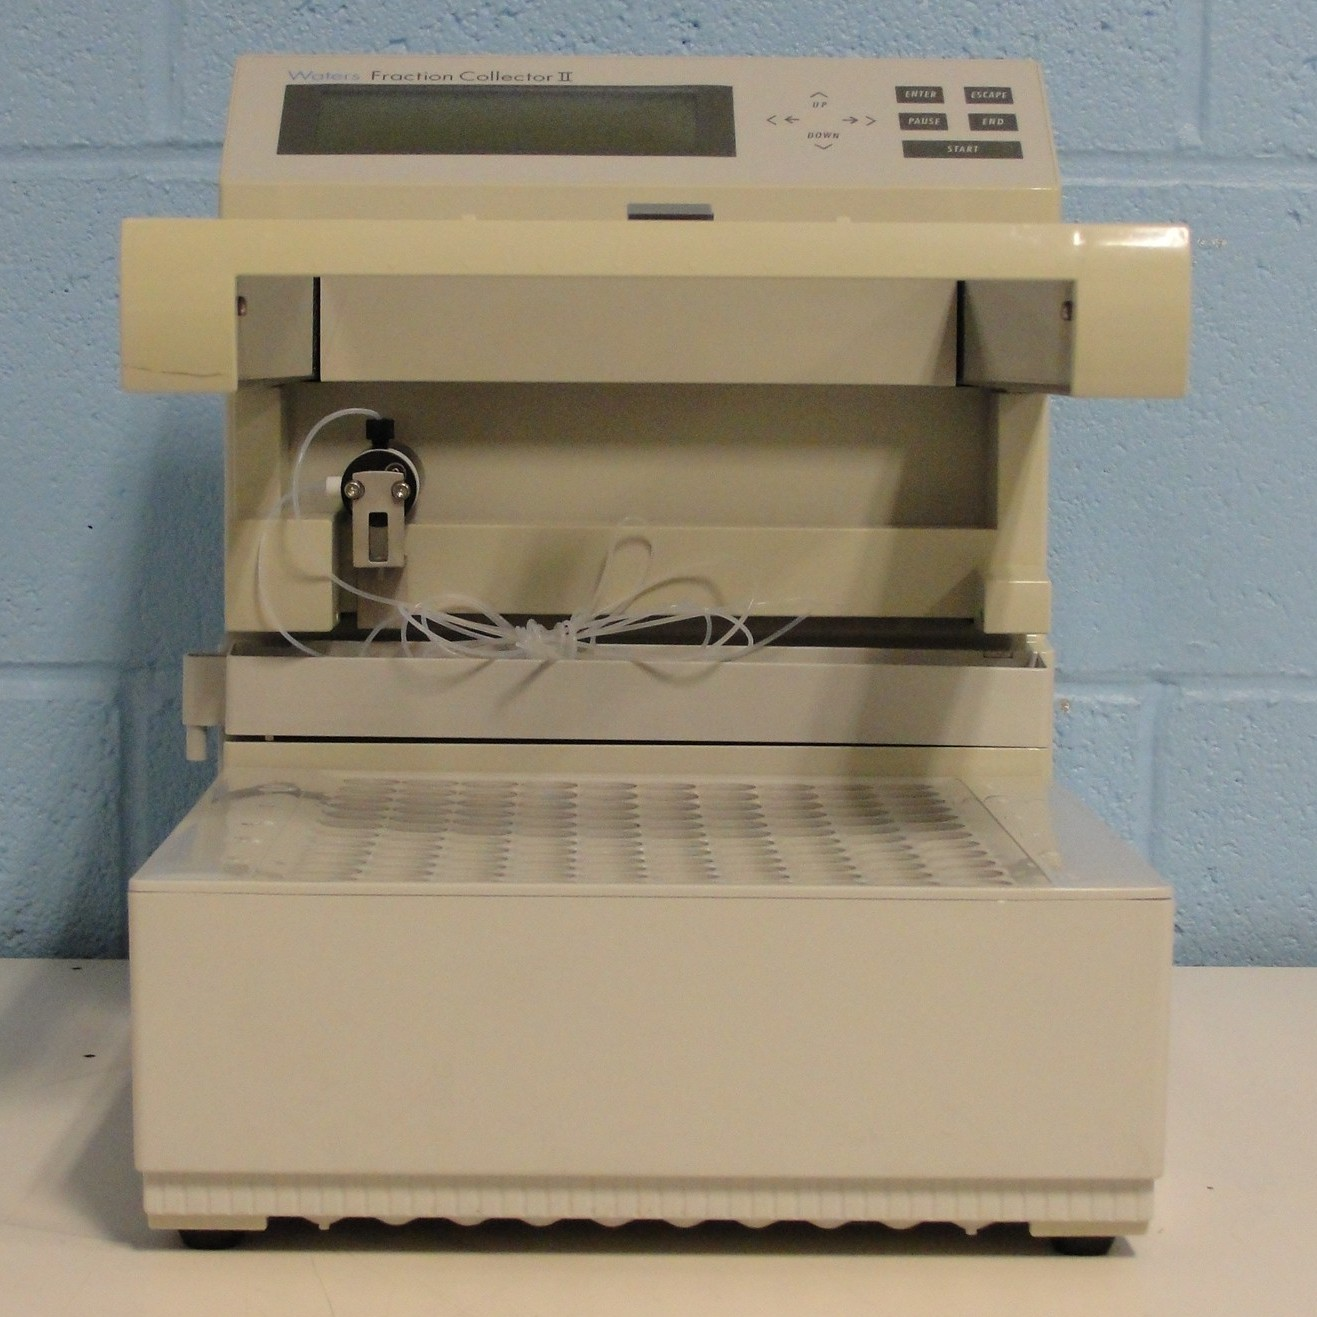 Waters Fraction Collector II with Sample Tube Tray Image